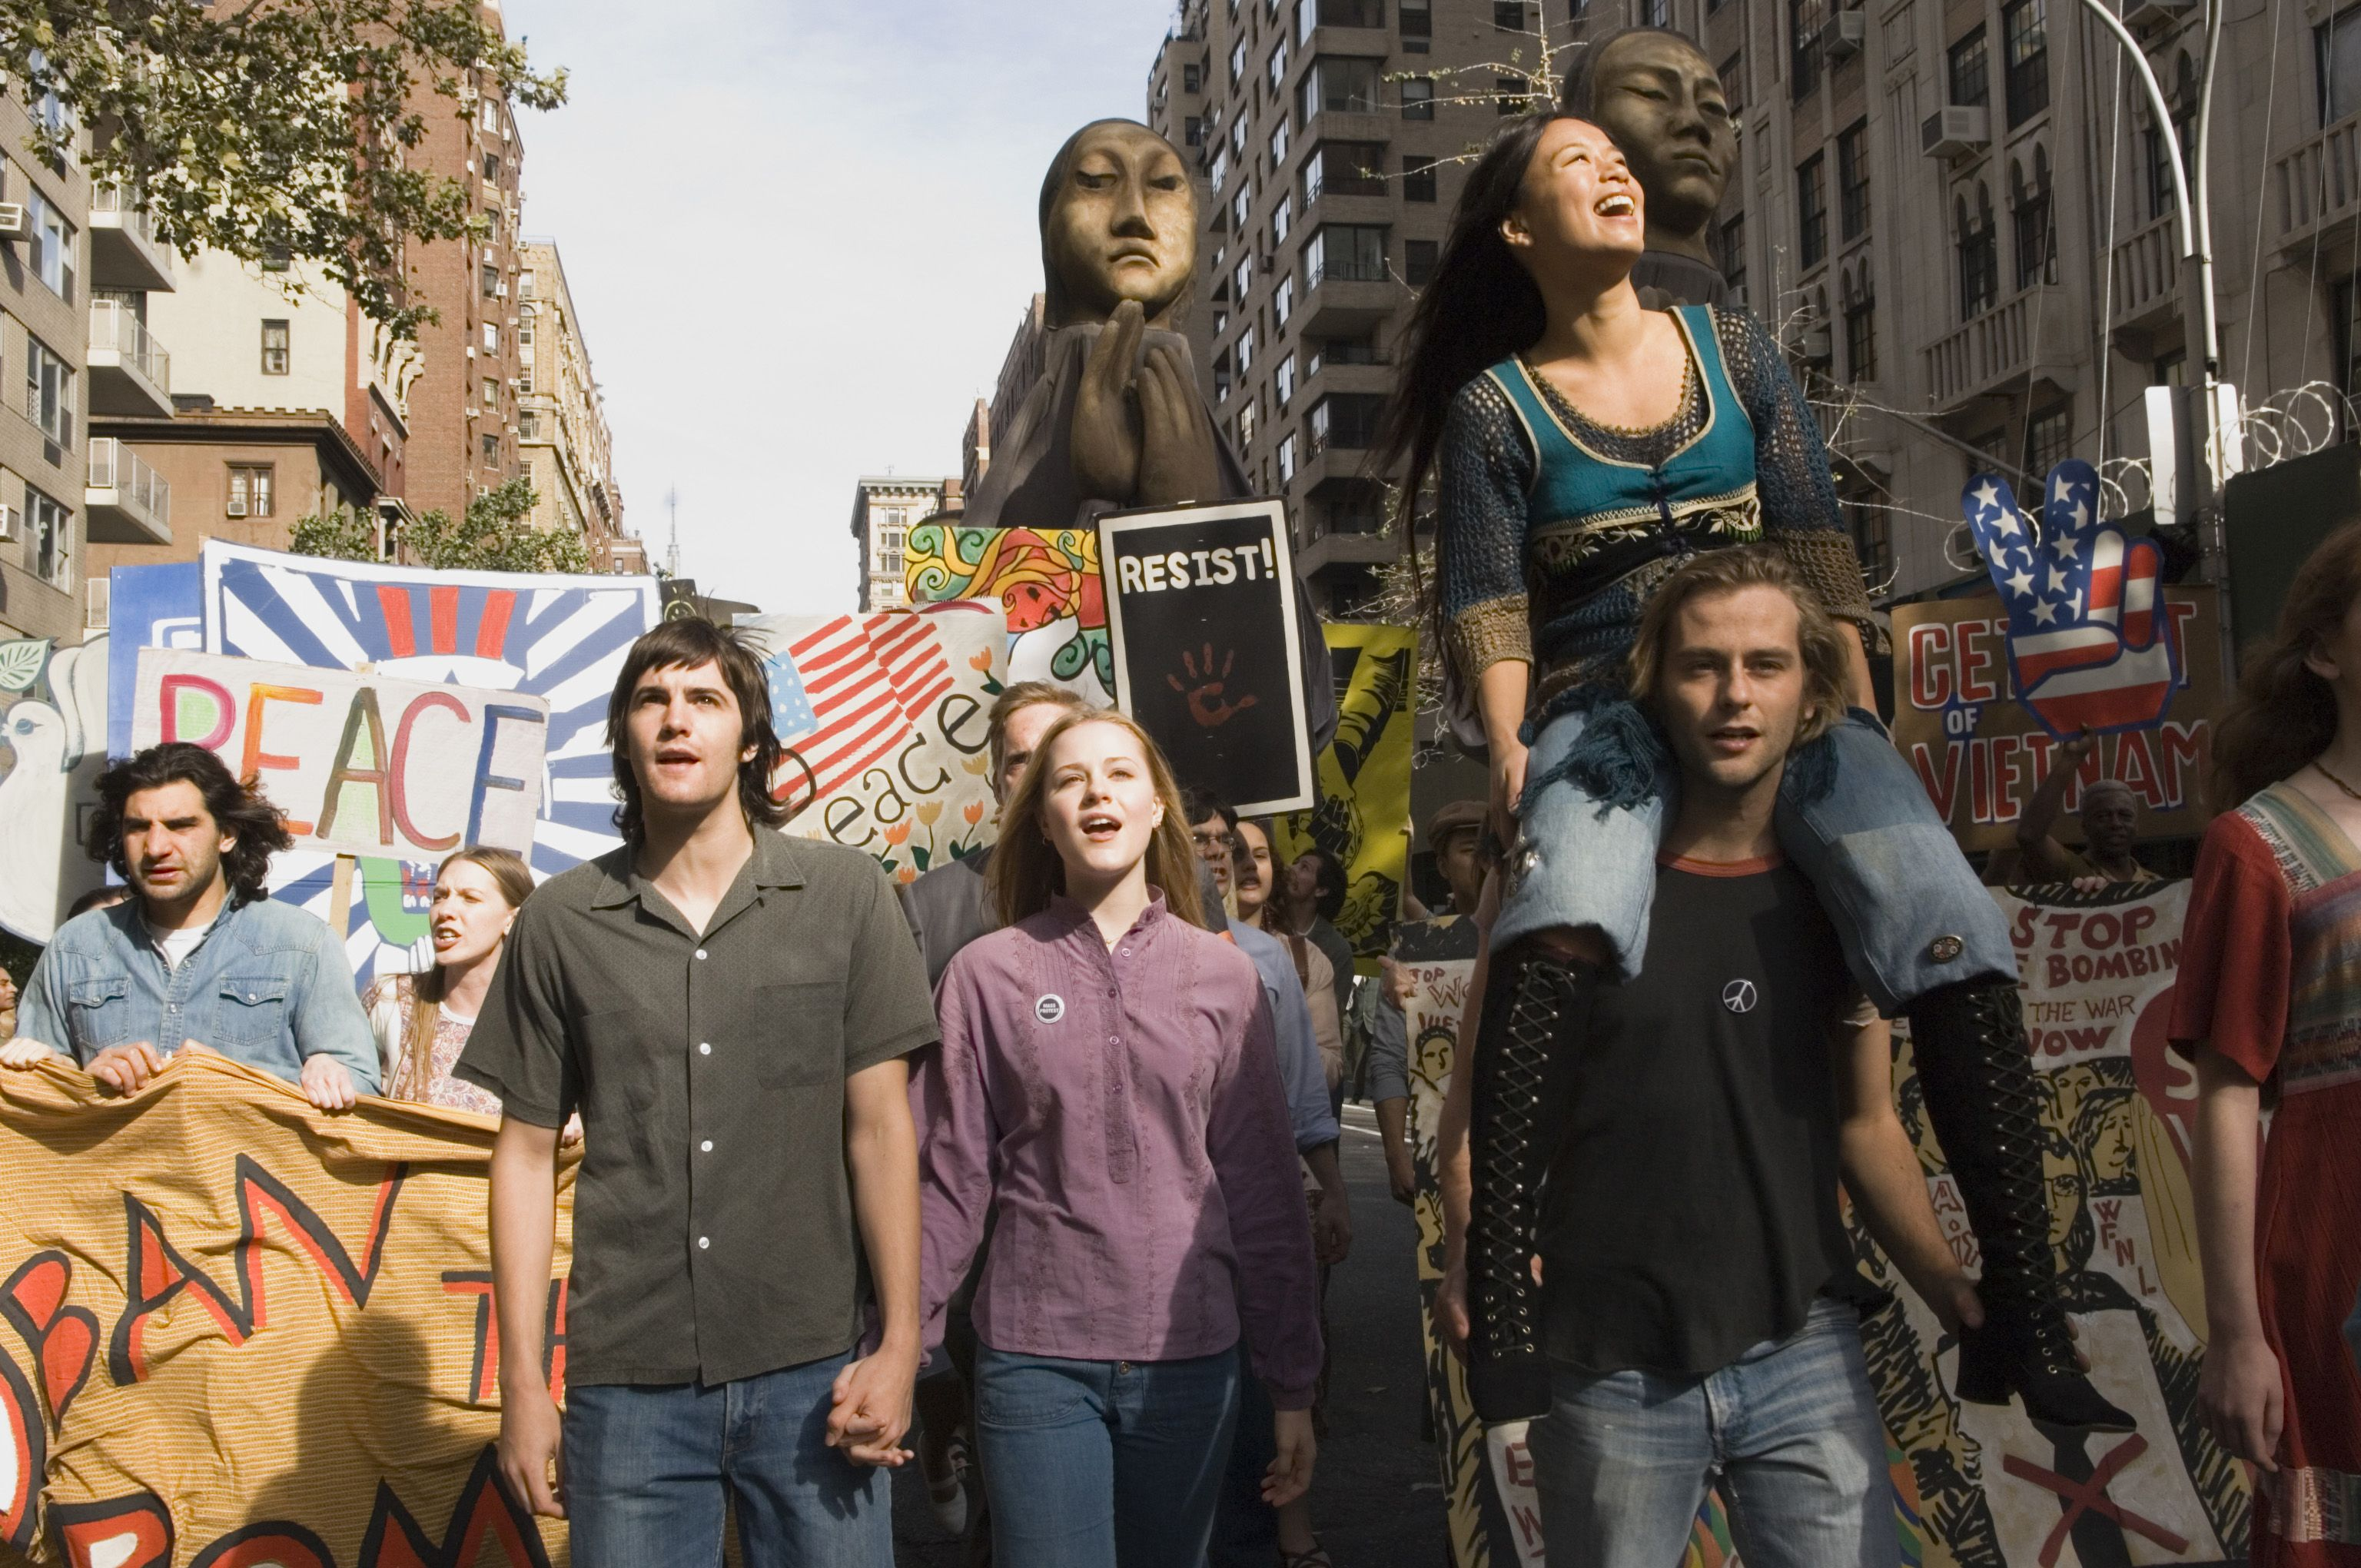 Across The Universe 2007 Director Julie Taymor My Rating 4